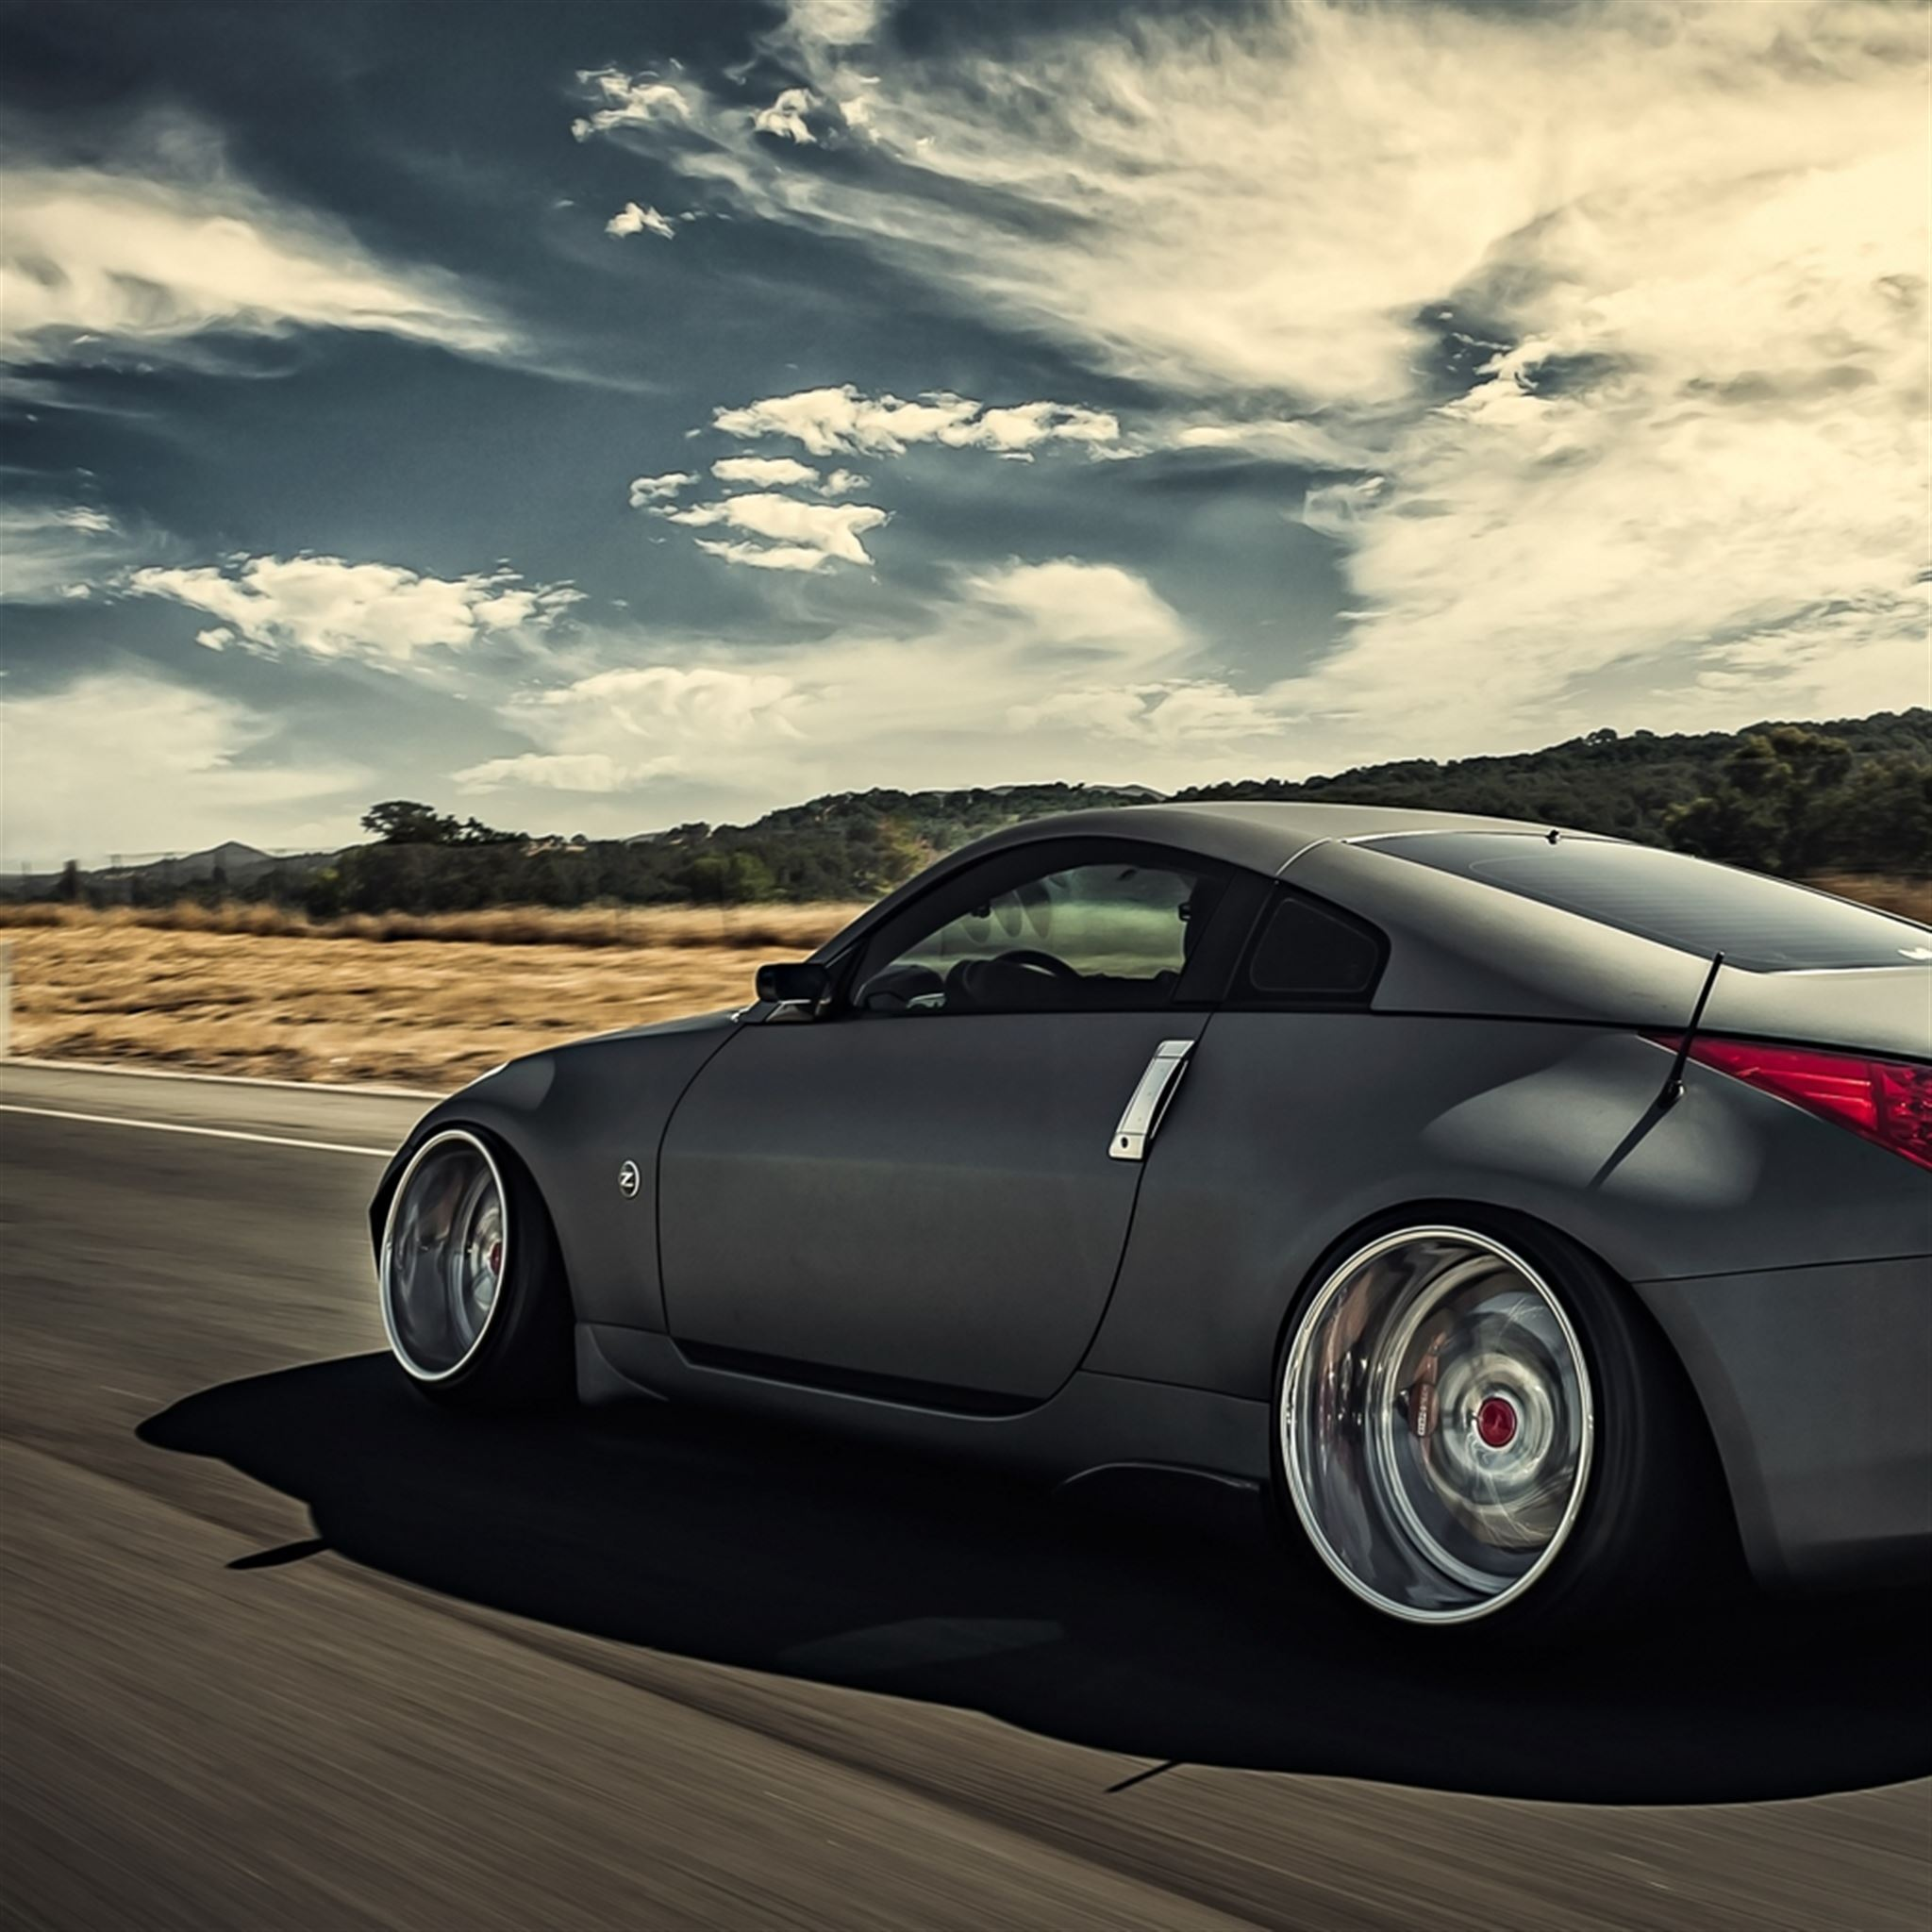 Nissan 350z Stance Movement Speed Side View iPad wallpaper